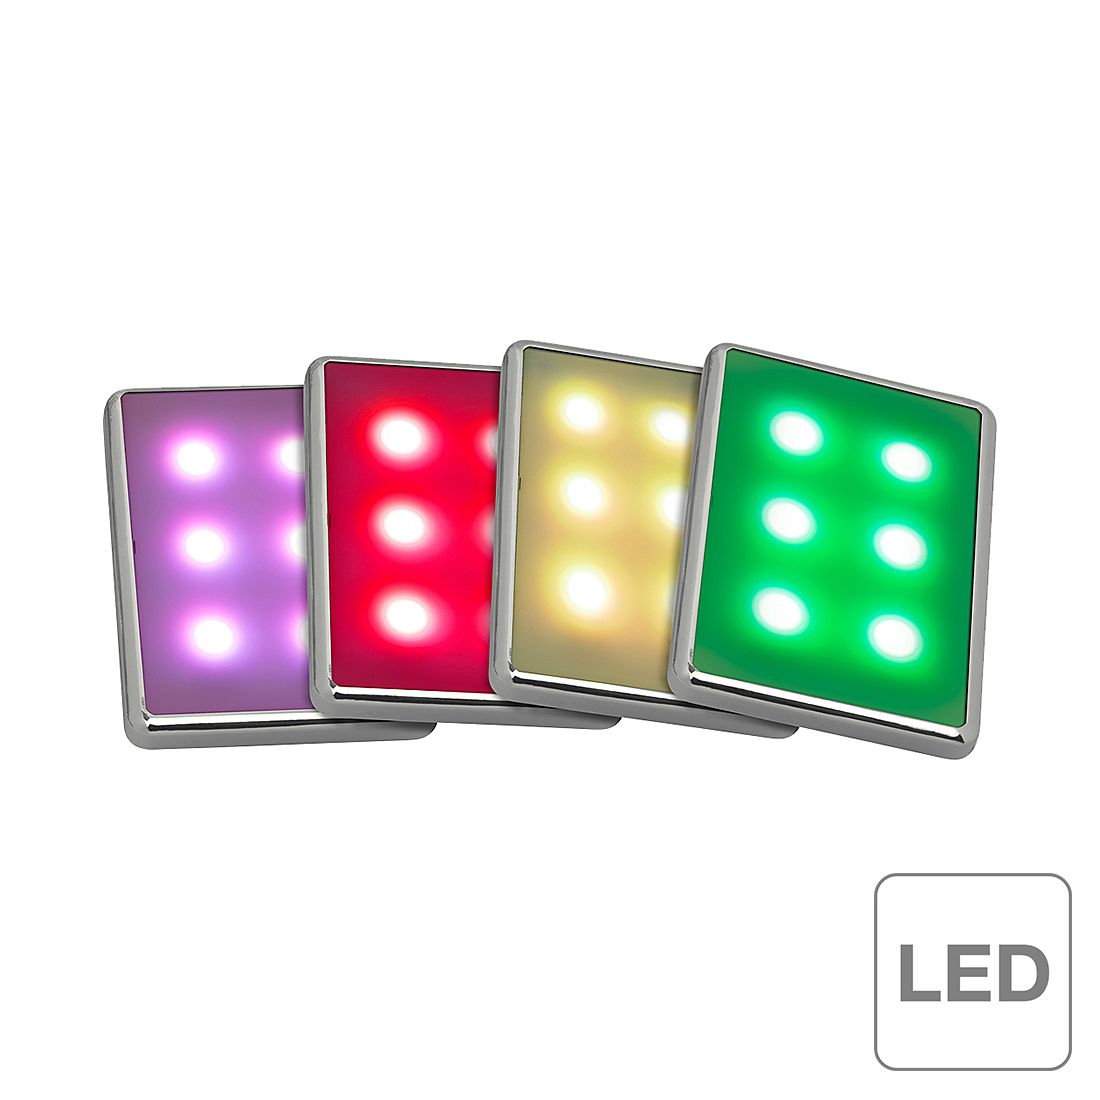 LED-Aufbauleuchtenset: Kiara ● 4-flammig- Brilliant A+